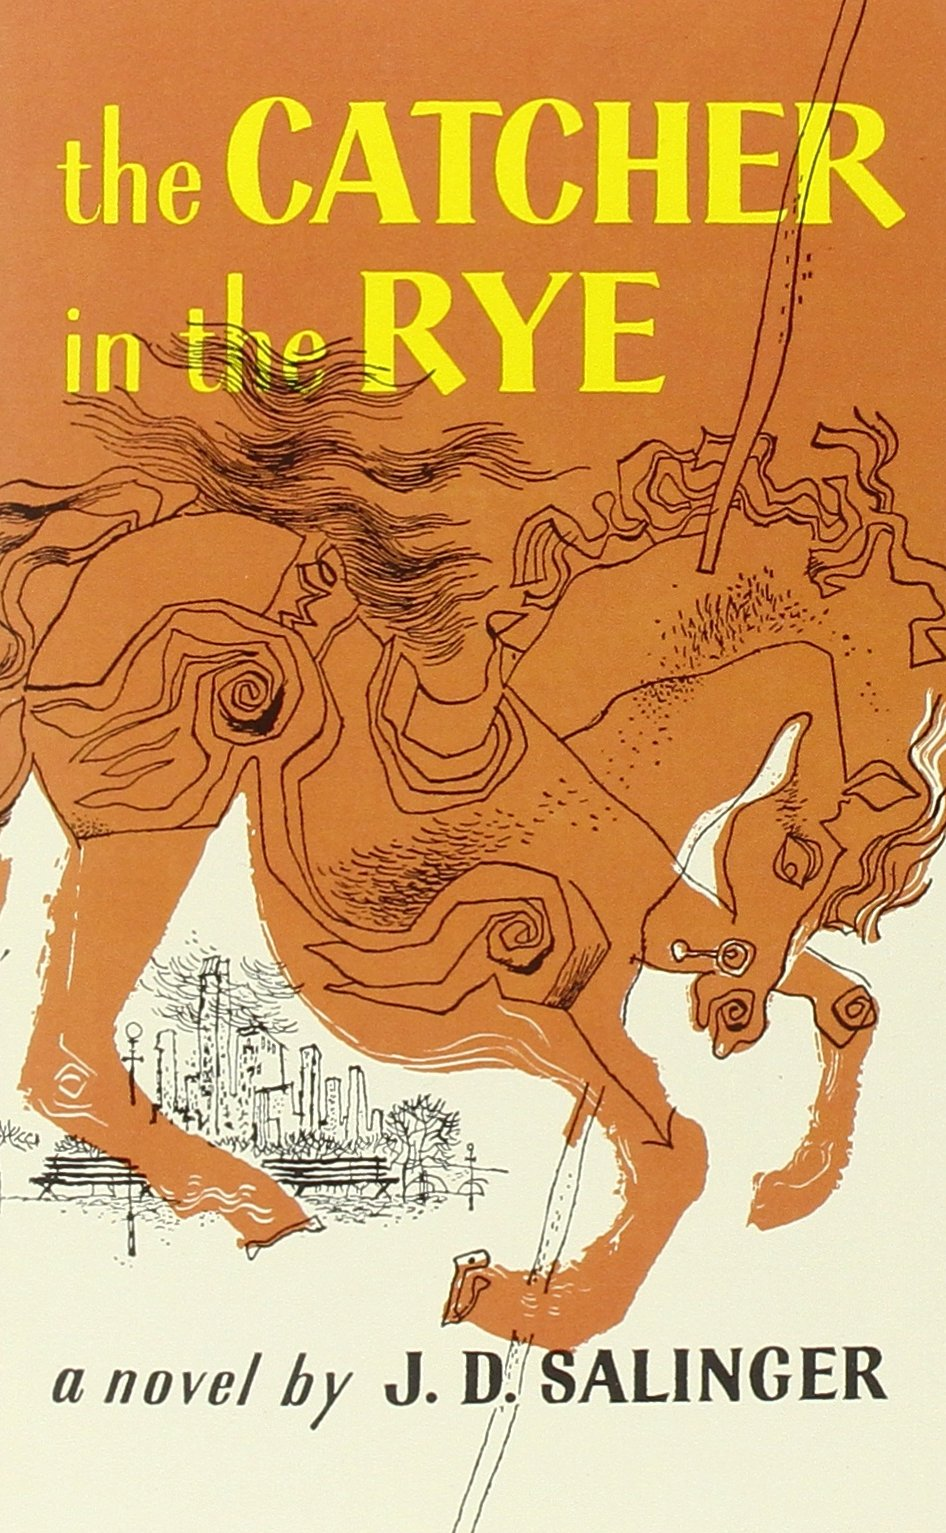 The Catcher in the Rye - Banned Books to Read